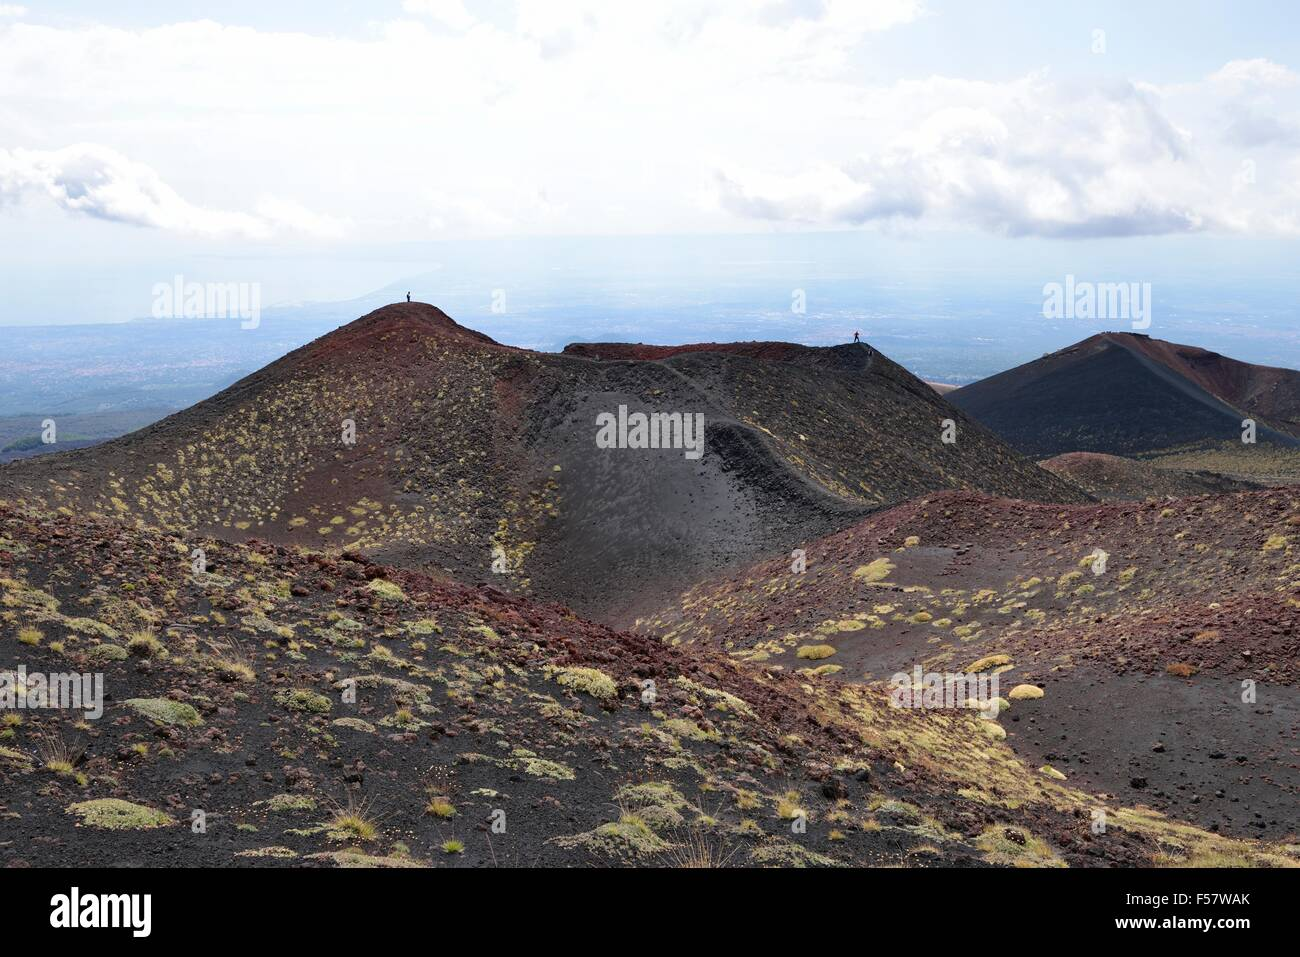 Side crater Crateri Silvestri, Mount Etna, Sicily, Italy - Stock Image